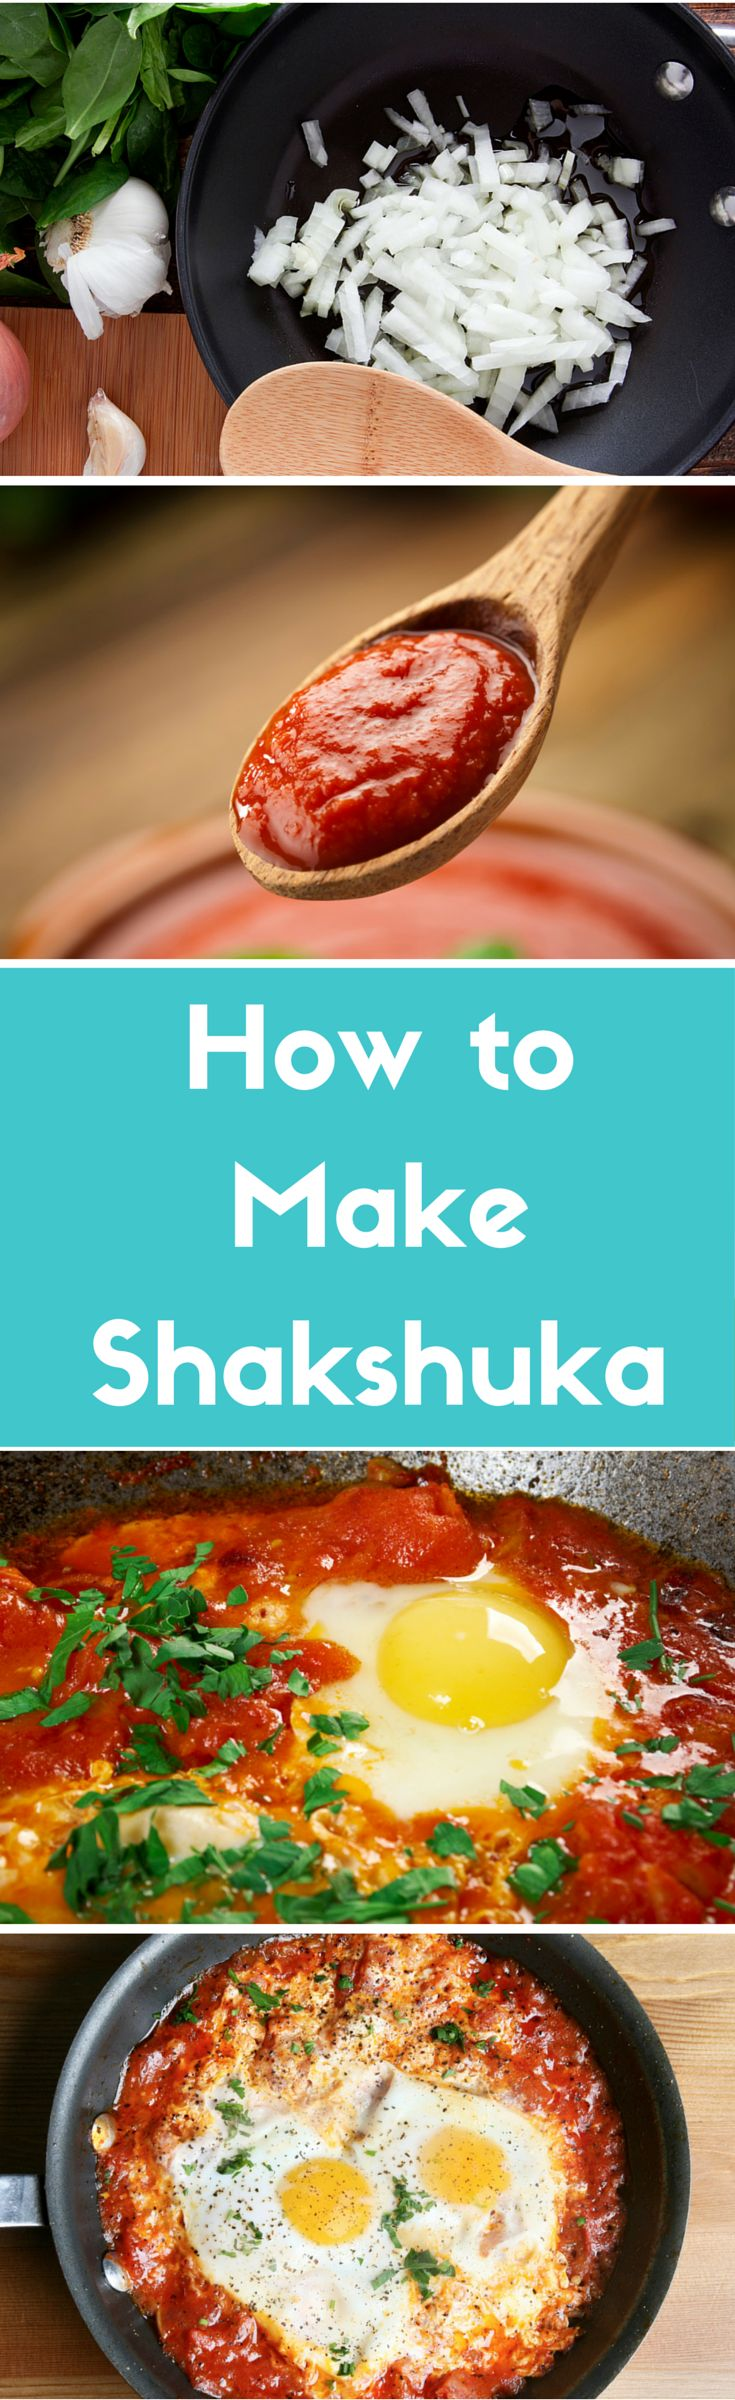 125 best shabbat recipes images on pinterest jewish food kitchens a quick guide to making shakshuka the popular israeli egg dish forumfinder